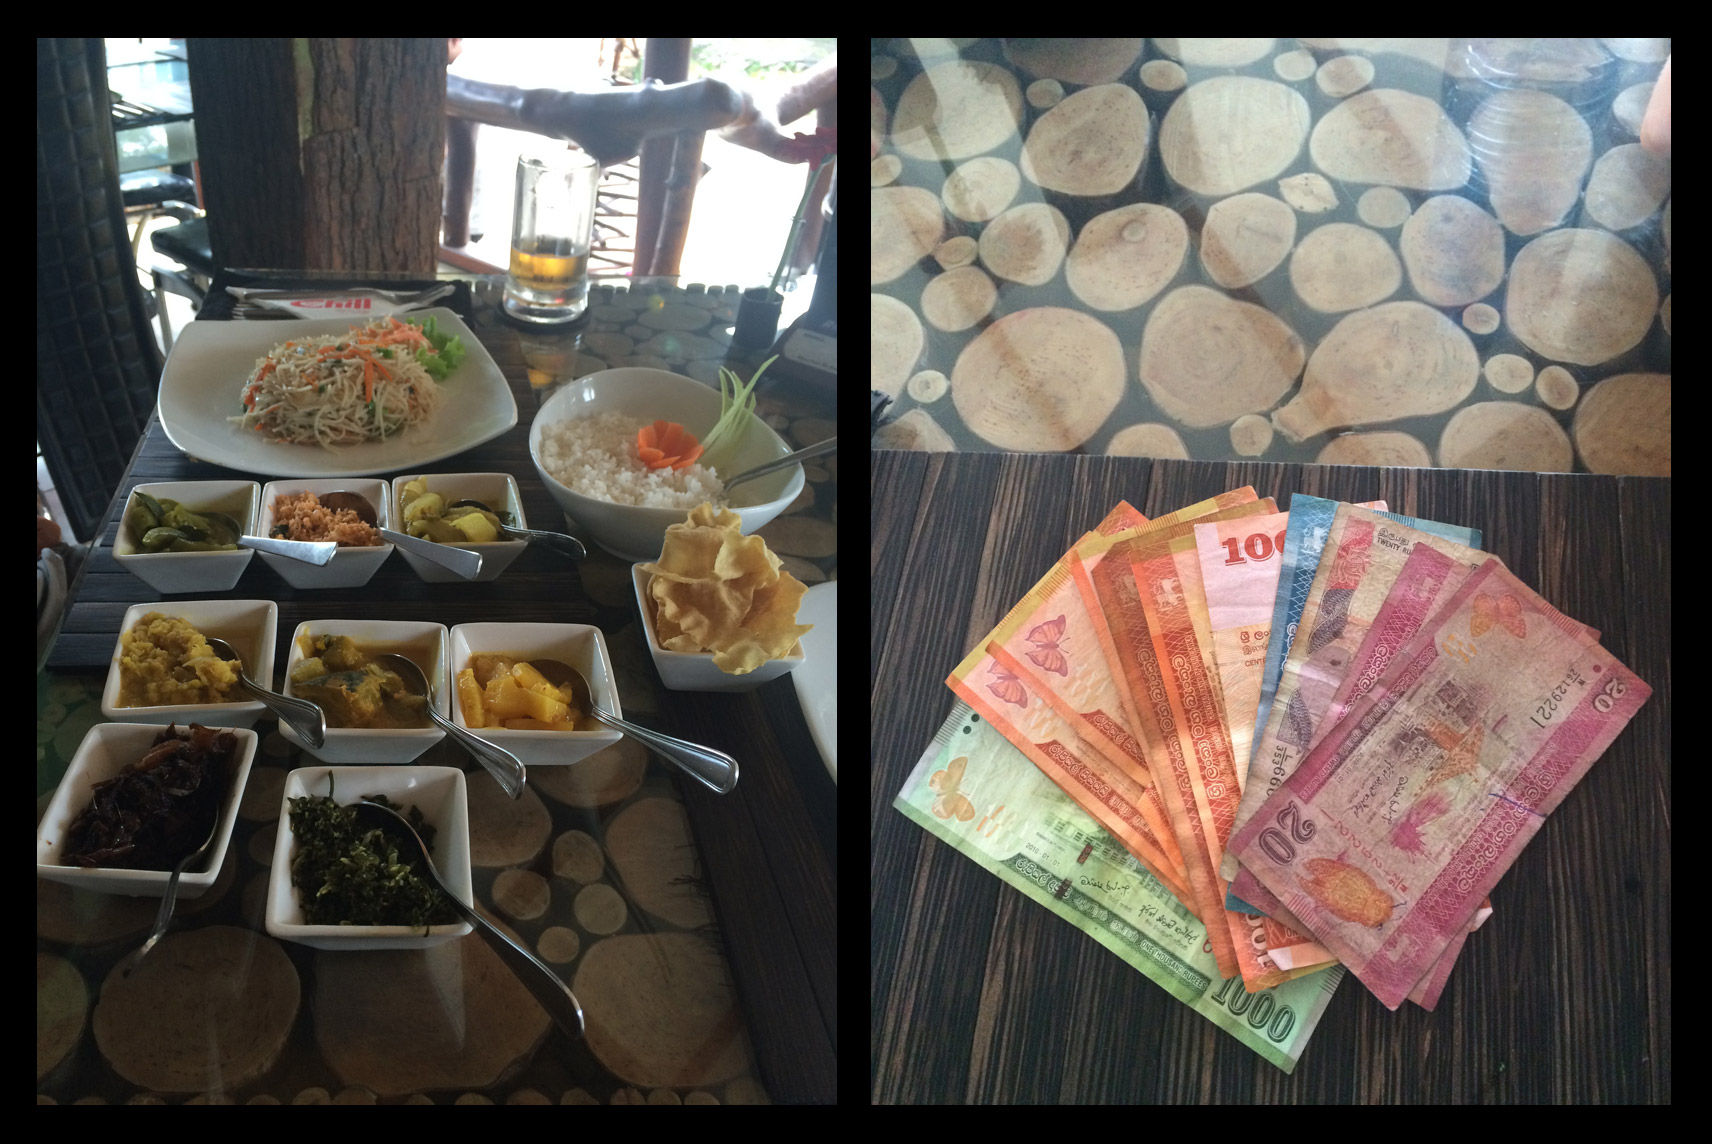 A ten course rice and curry dish for one person (yes that's 10 separate spoons!) and the colorful Sri Lankan money.